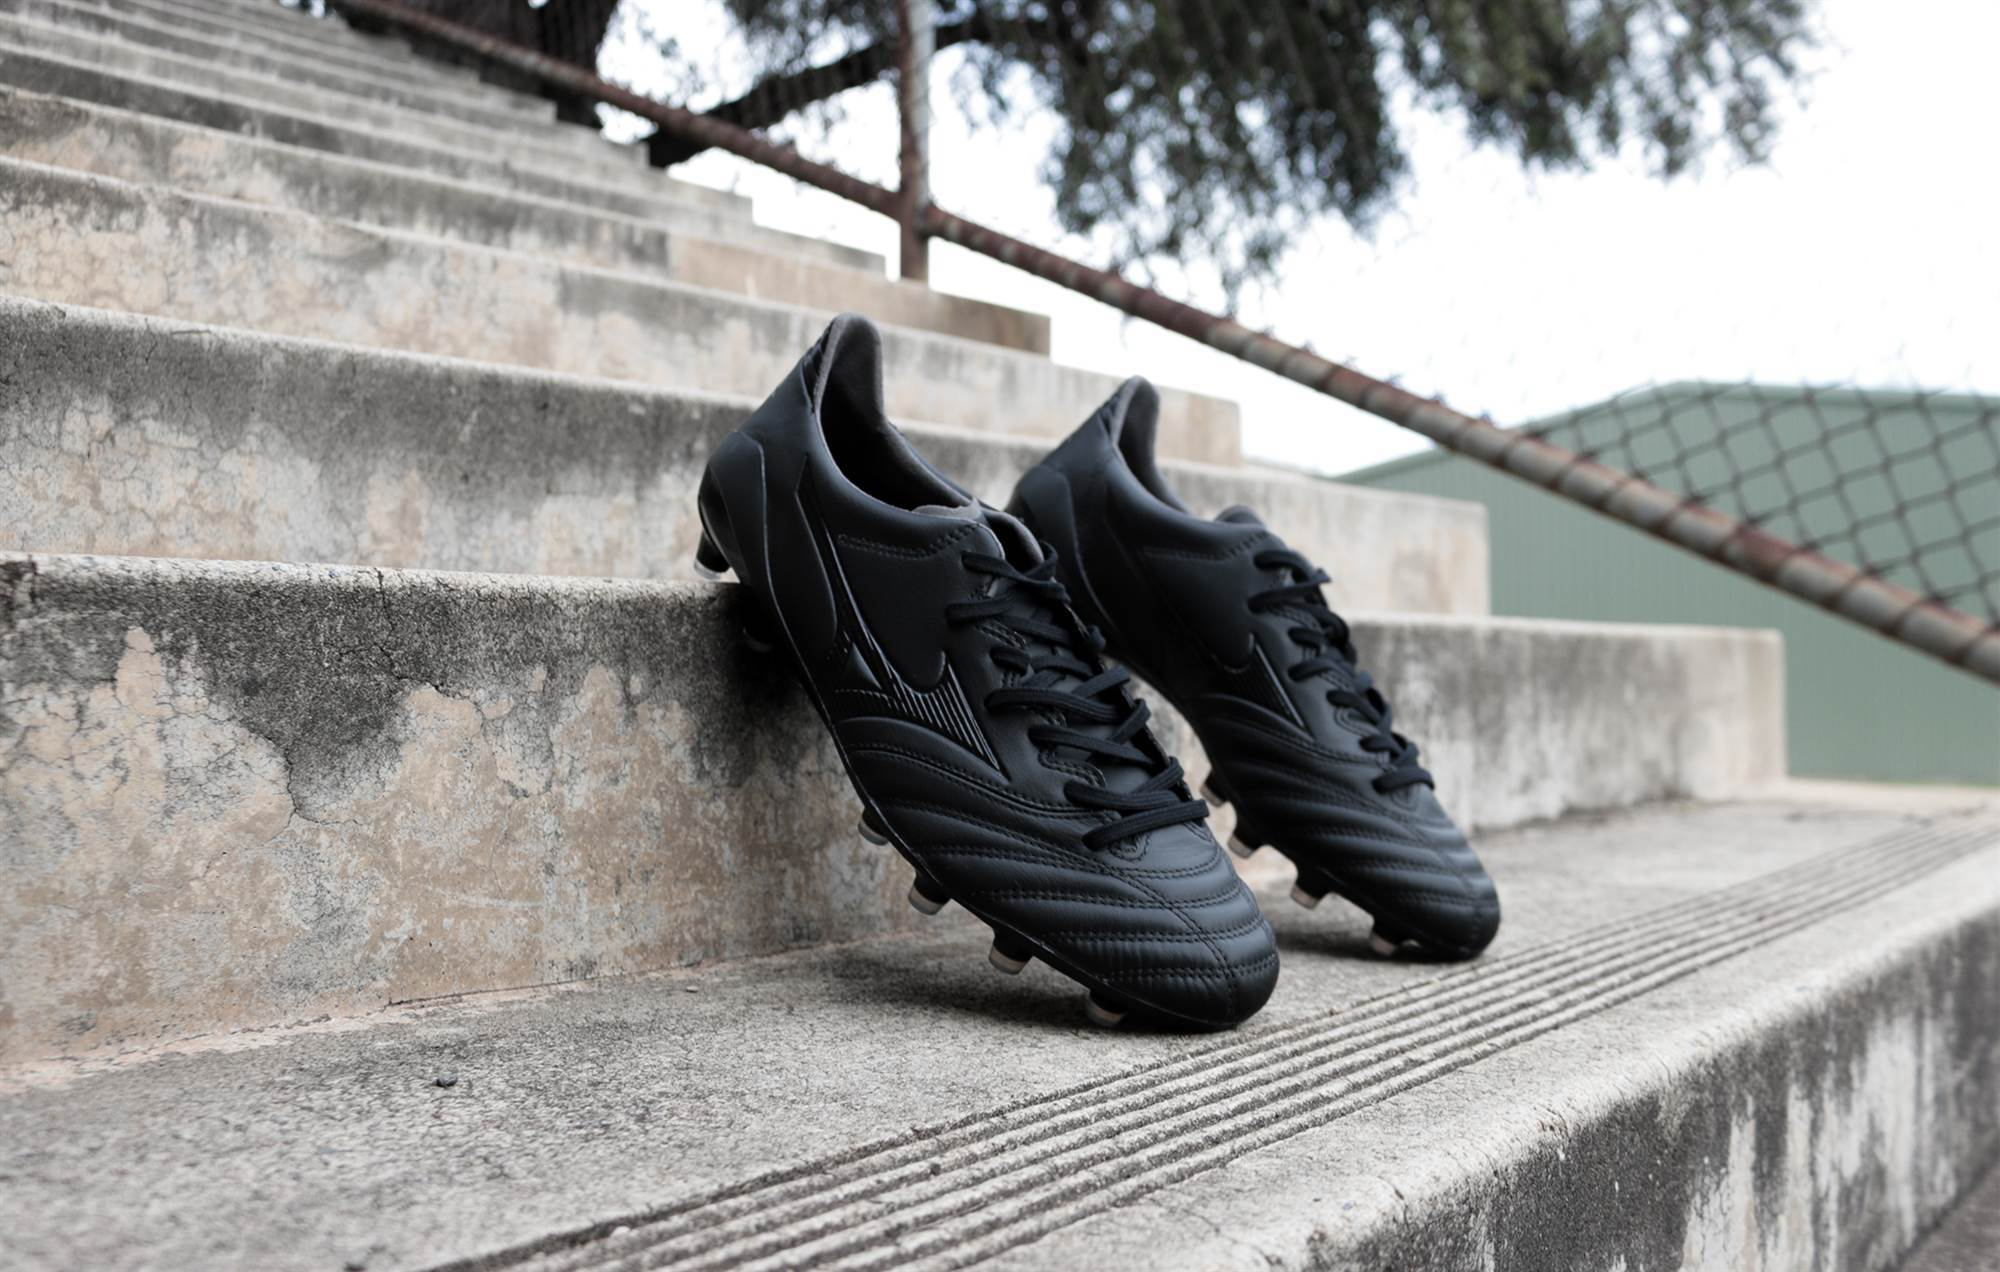 low priced 04d24 59c4f Gallery: Mizuno's deadly blackout Morelia Neo II - Boots ...